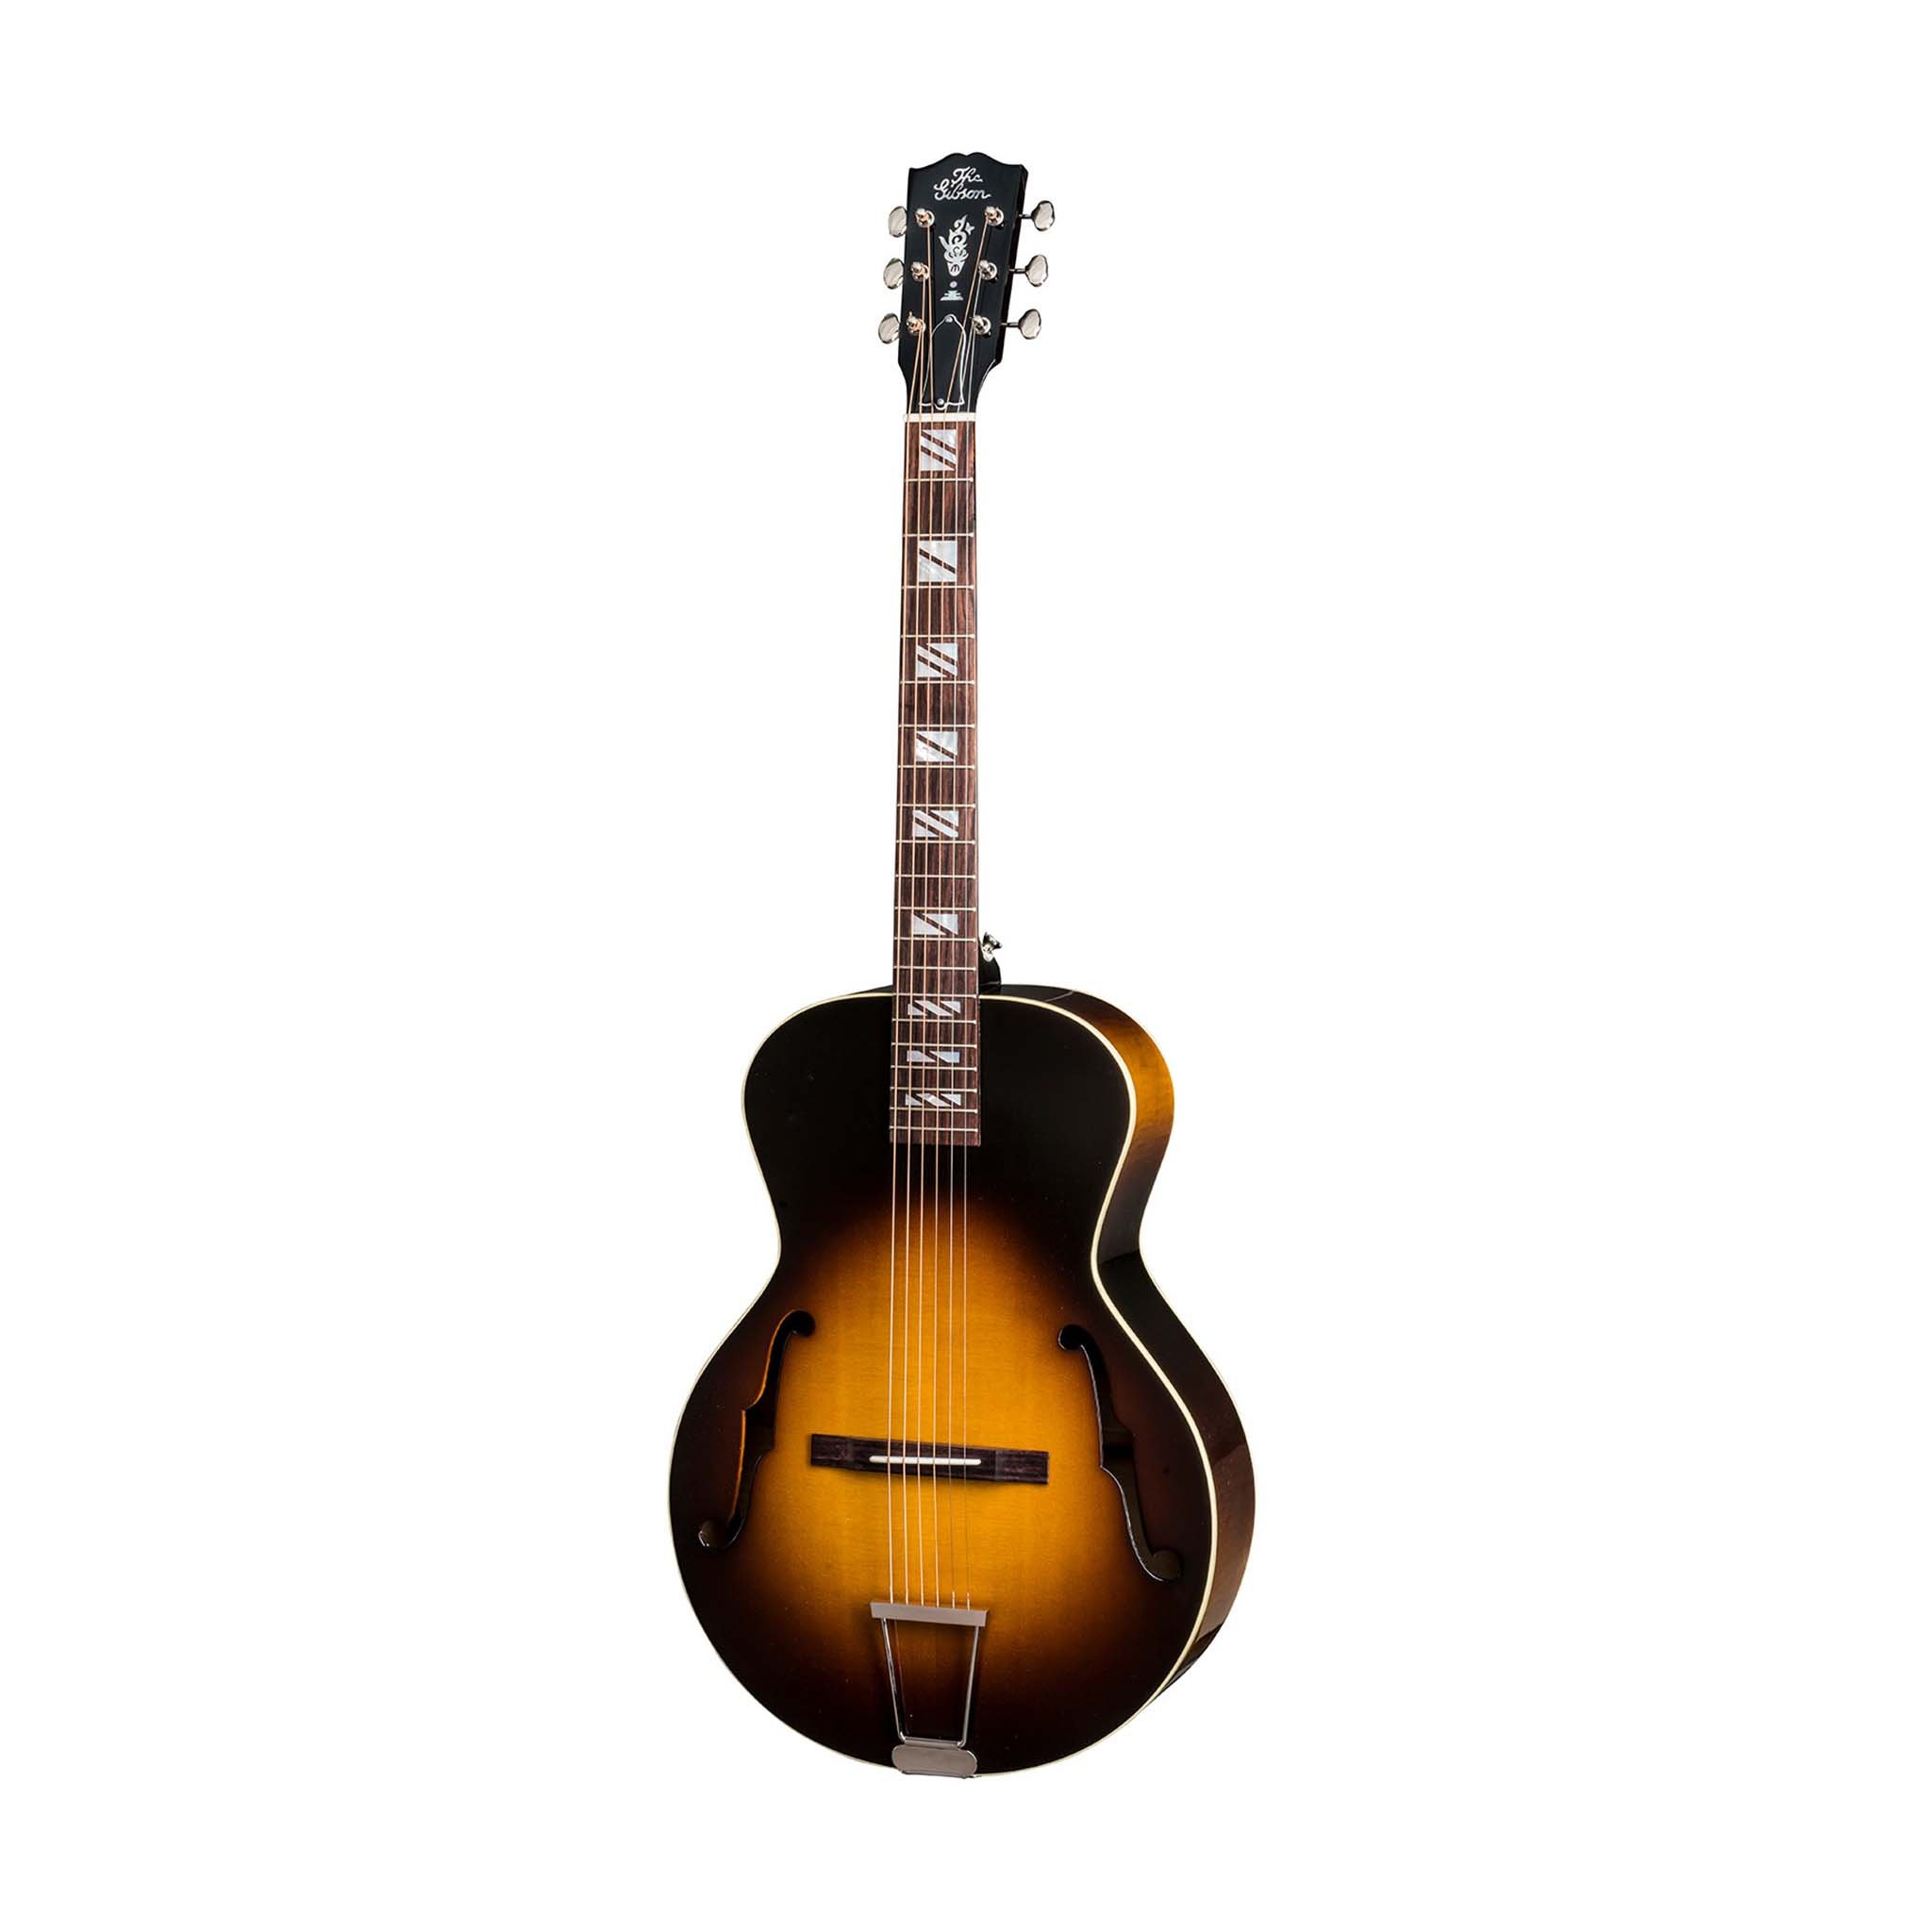 Gibson 2018 F-Hole L-1 Acoustic Guitar w/Case, Vintage Sunburst